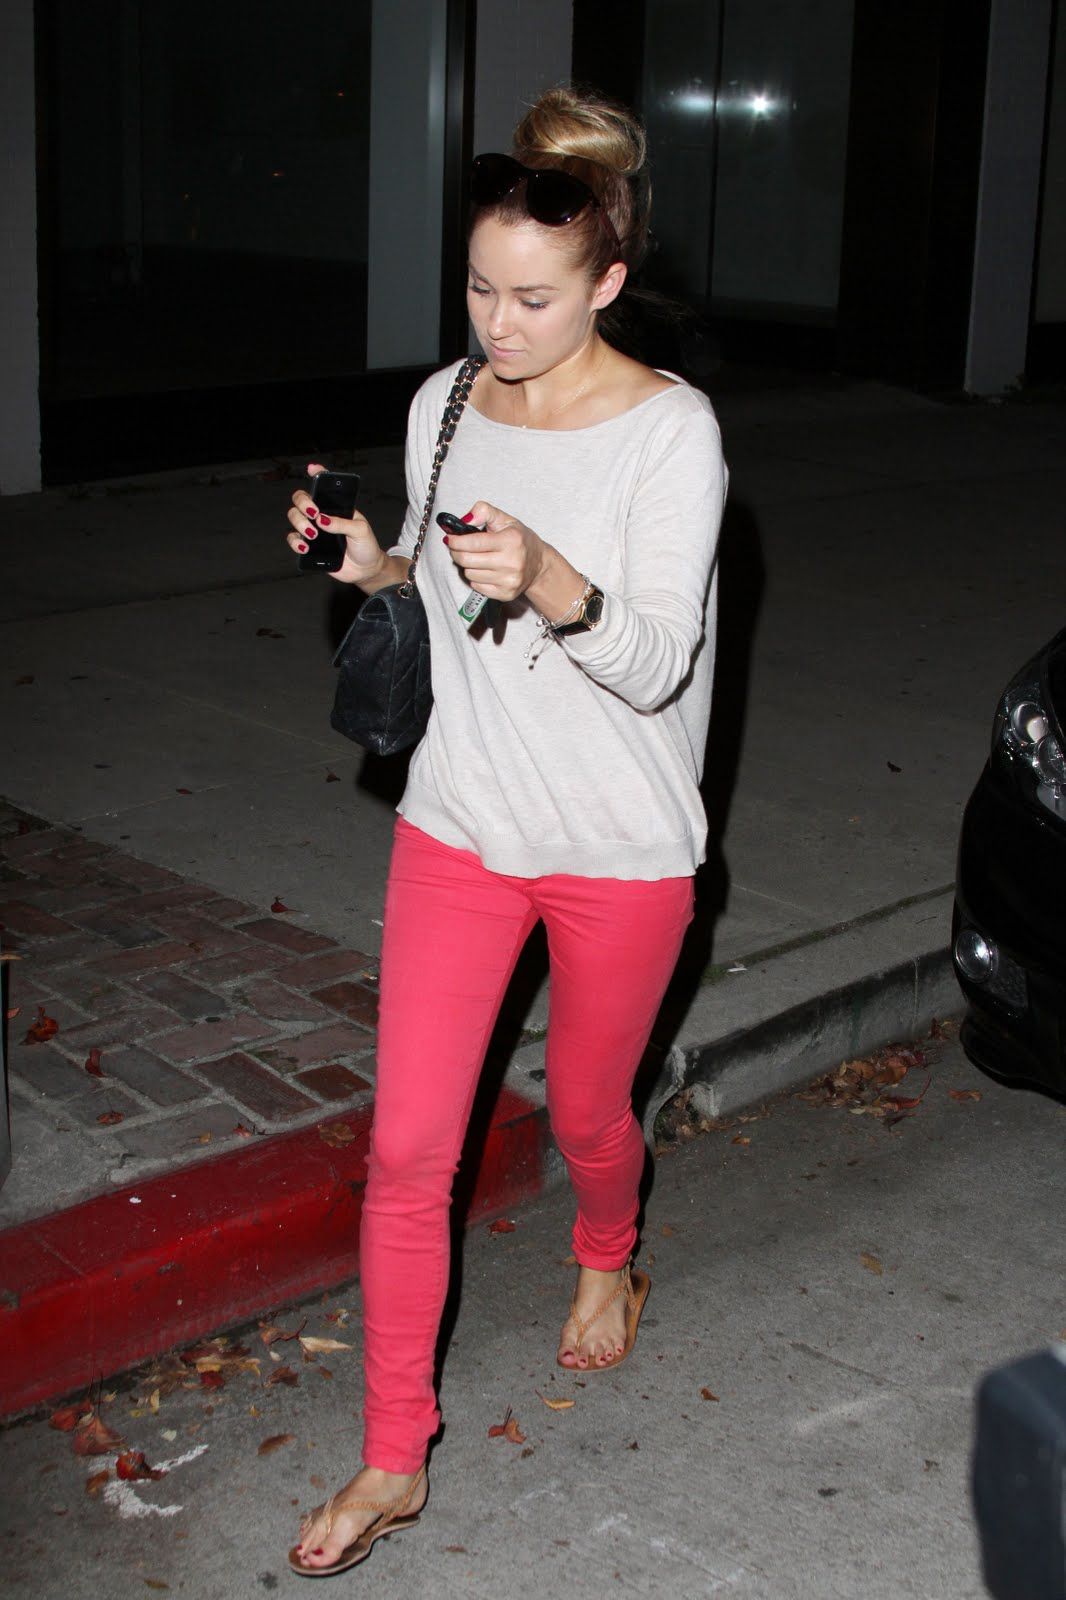 36b3ff7667 Lauren Conrad was spotted at the Kate Somerville Spa in West Hollywood  yesterday, November 18. LC looked cute & casual in a neutral top with  bright bottoms.